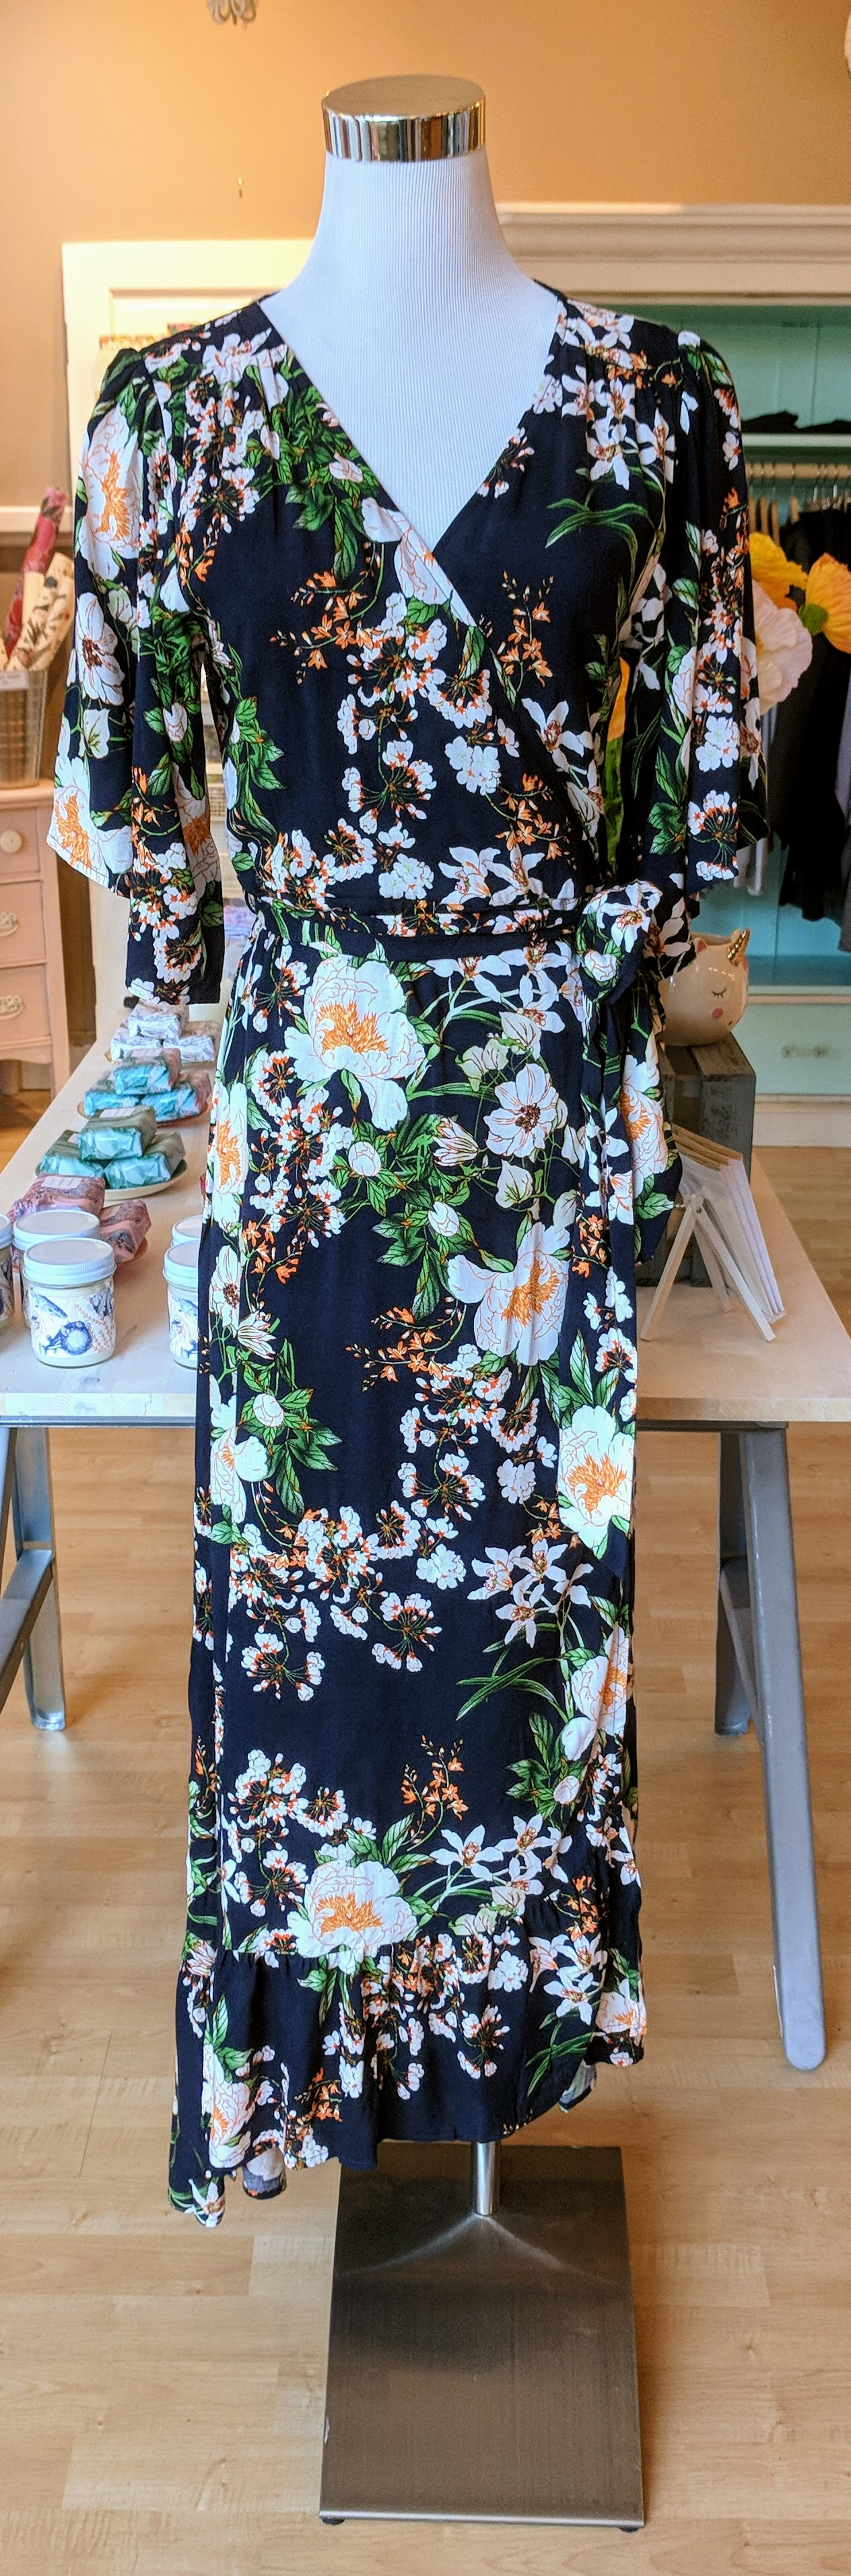 Navy floral wrap dress with hi-low ruffle hem and tie waistband.